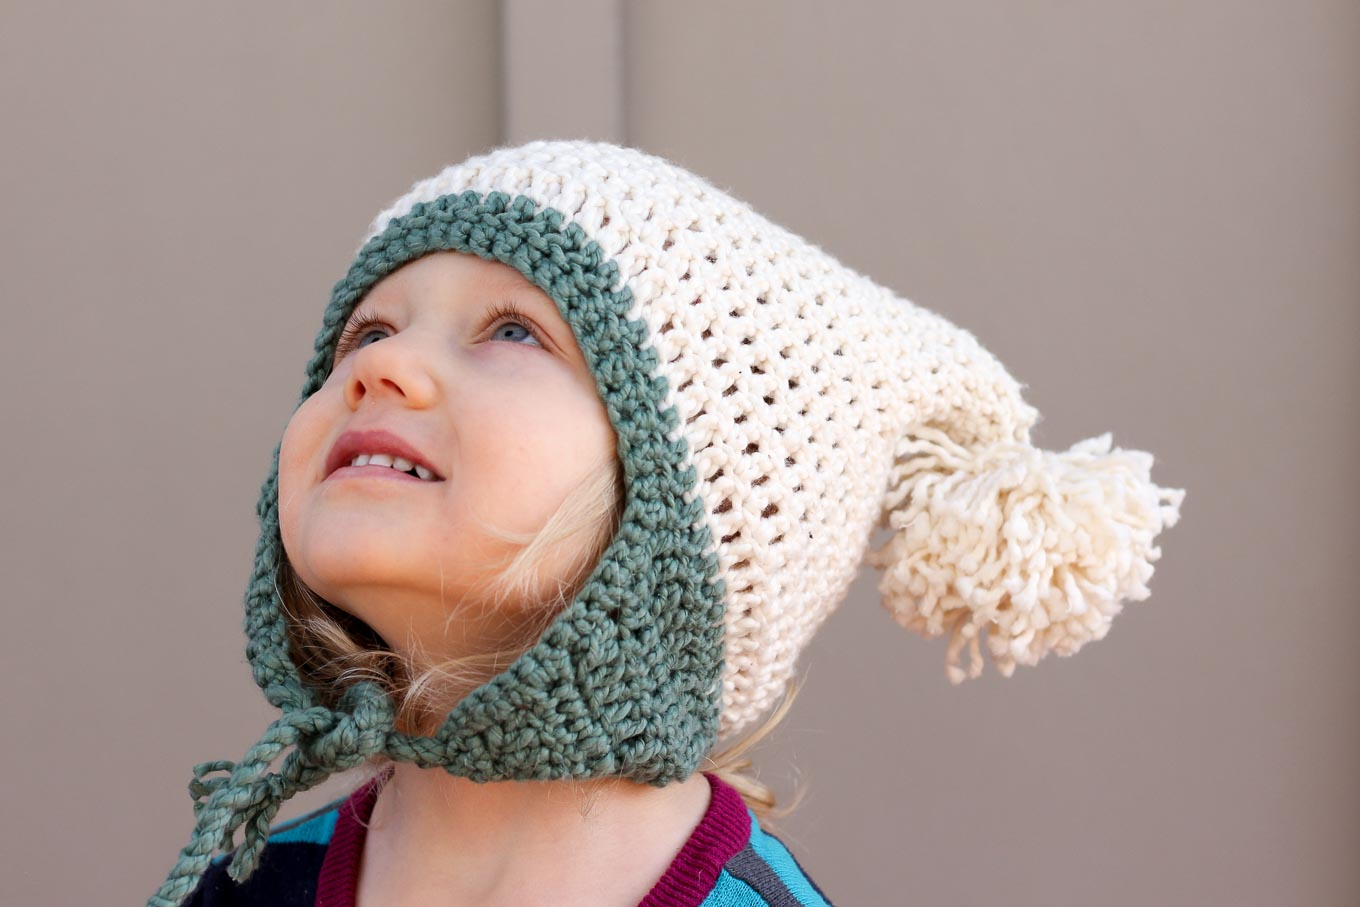 Crochet Baby Hat Pattern With Pom Pom : Free Beginner Crochet Beanie Hat Pattern